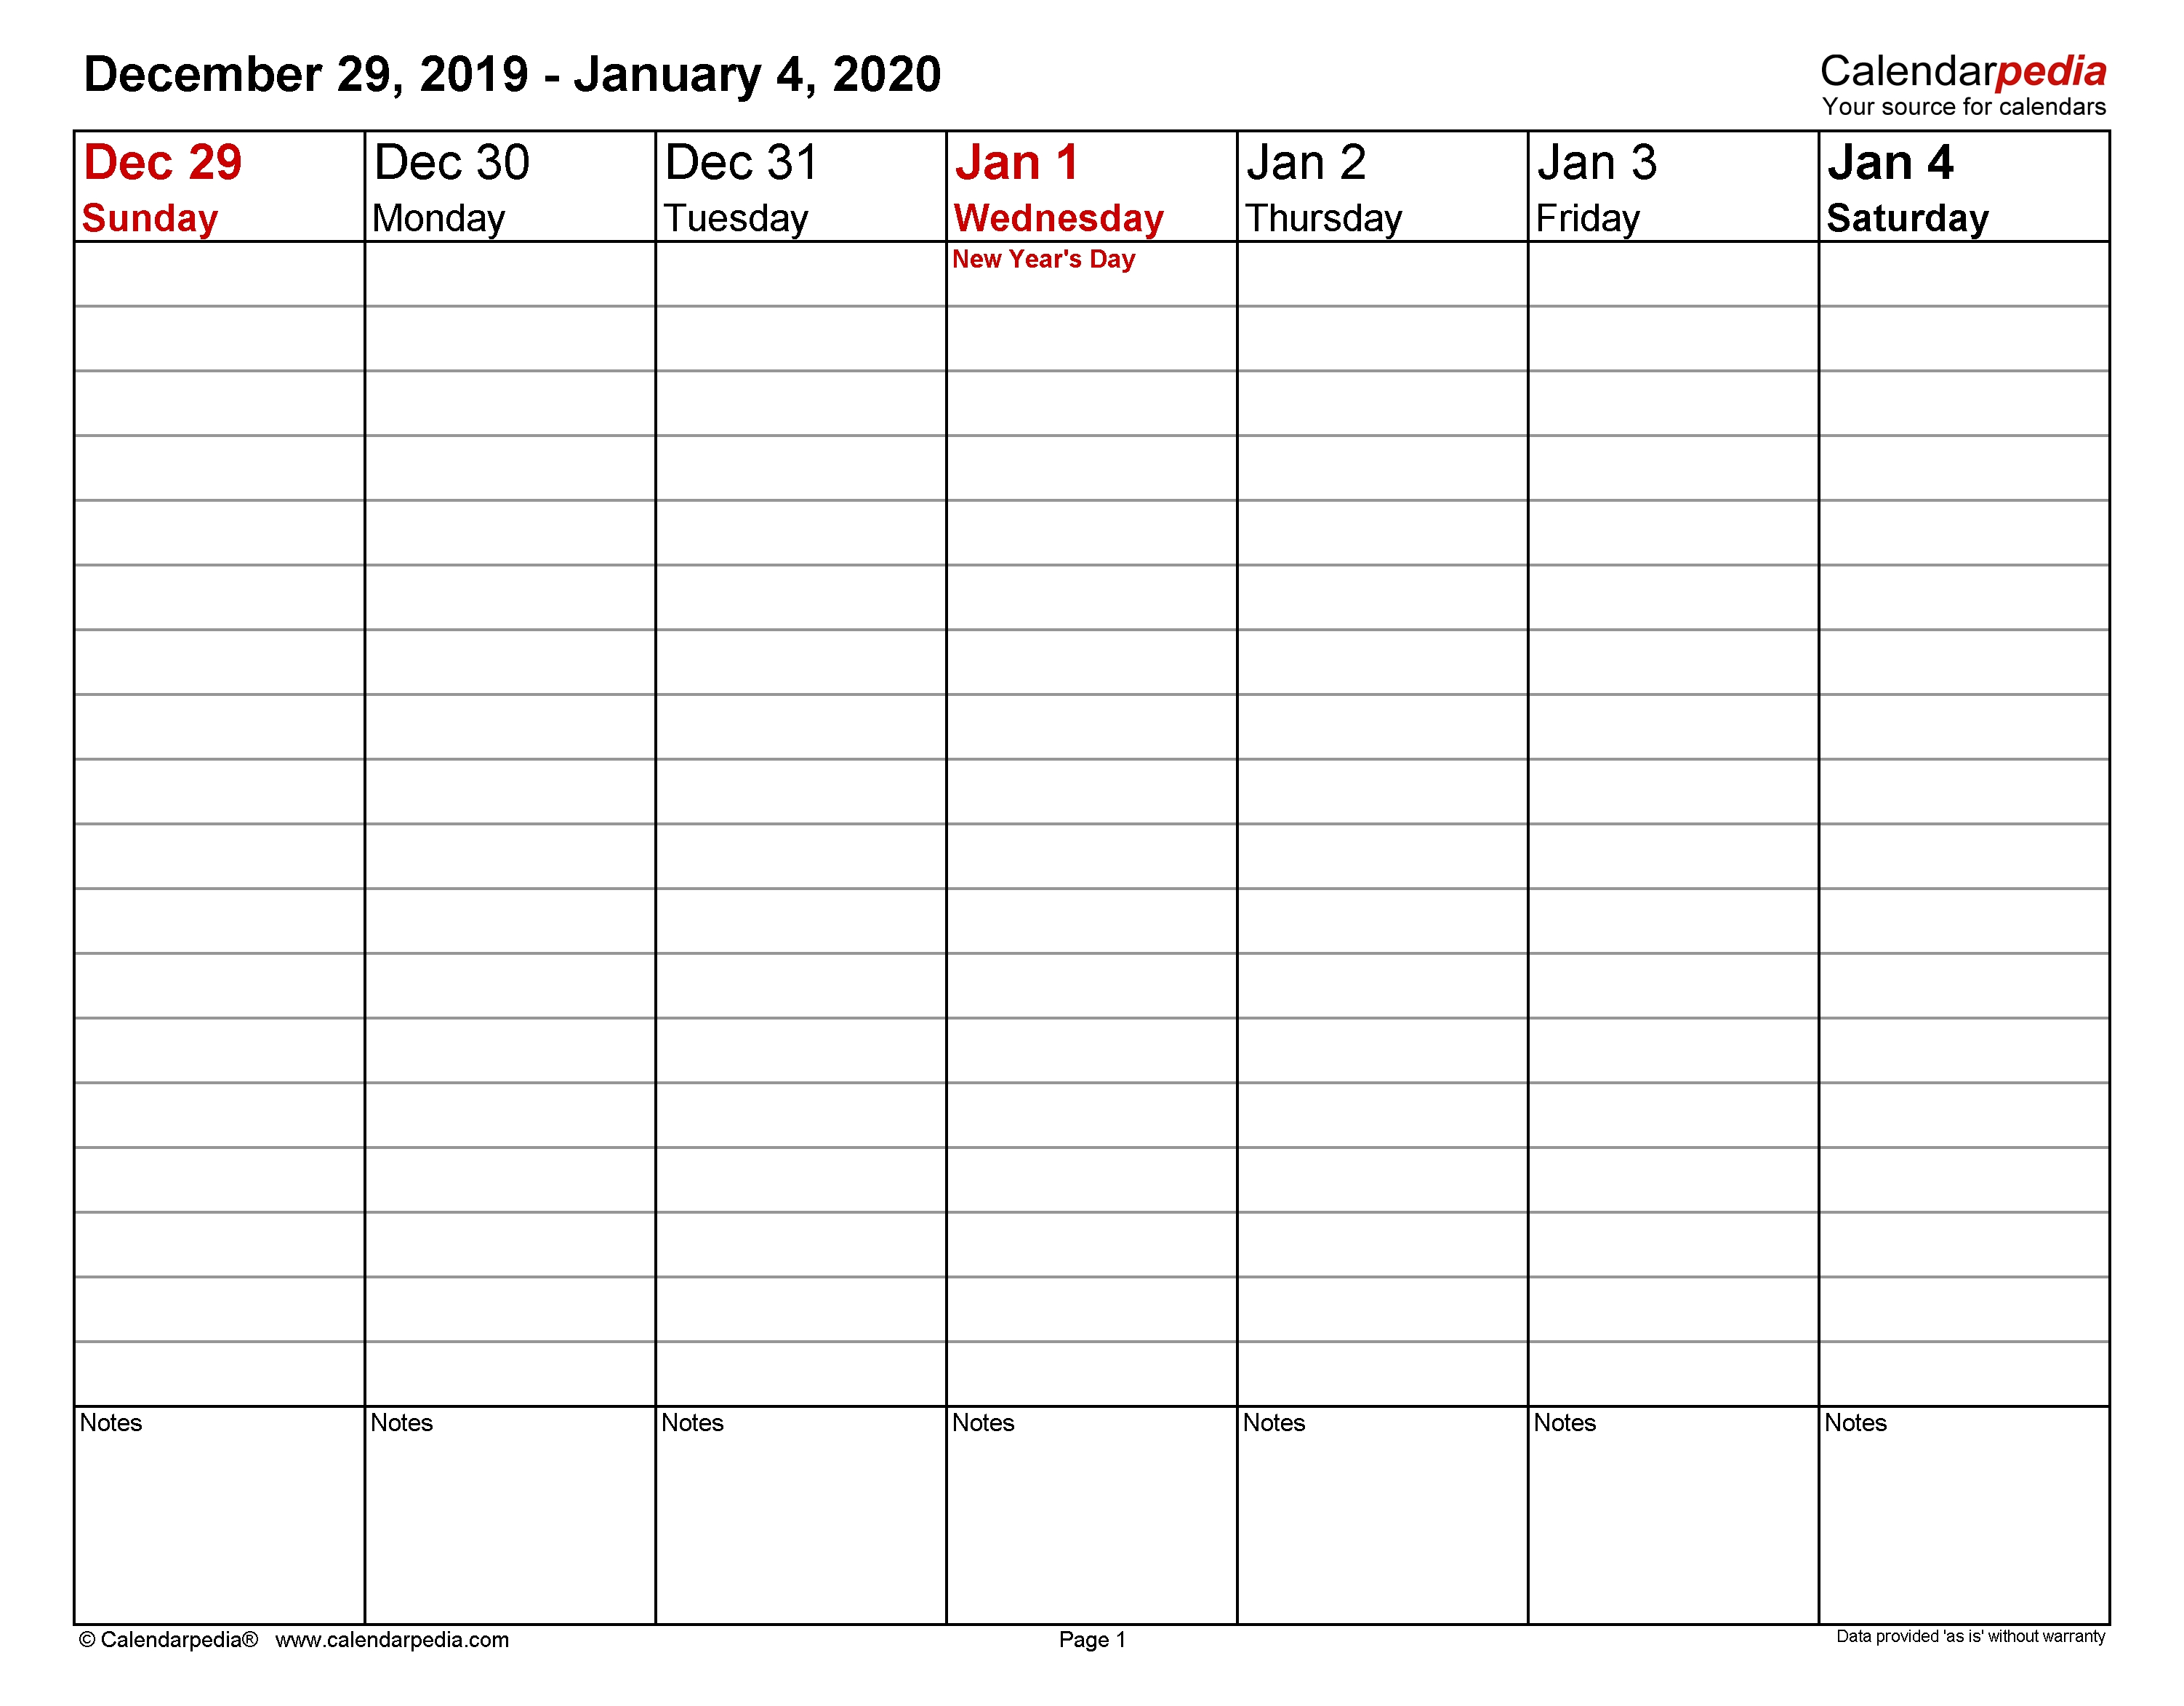 Weekly Calendars 2020 For Word - 12 Free Printable Templates throughout 2020 Calendar Format Monday Through Friday Week